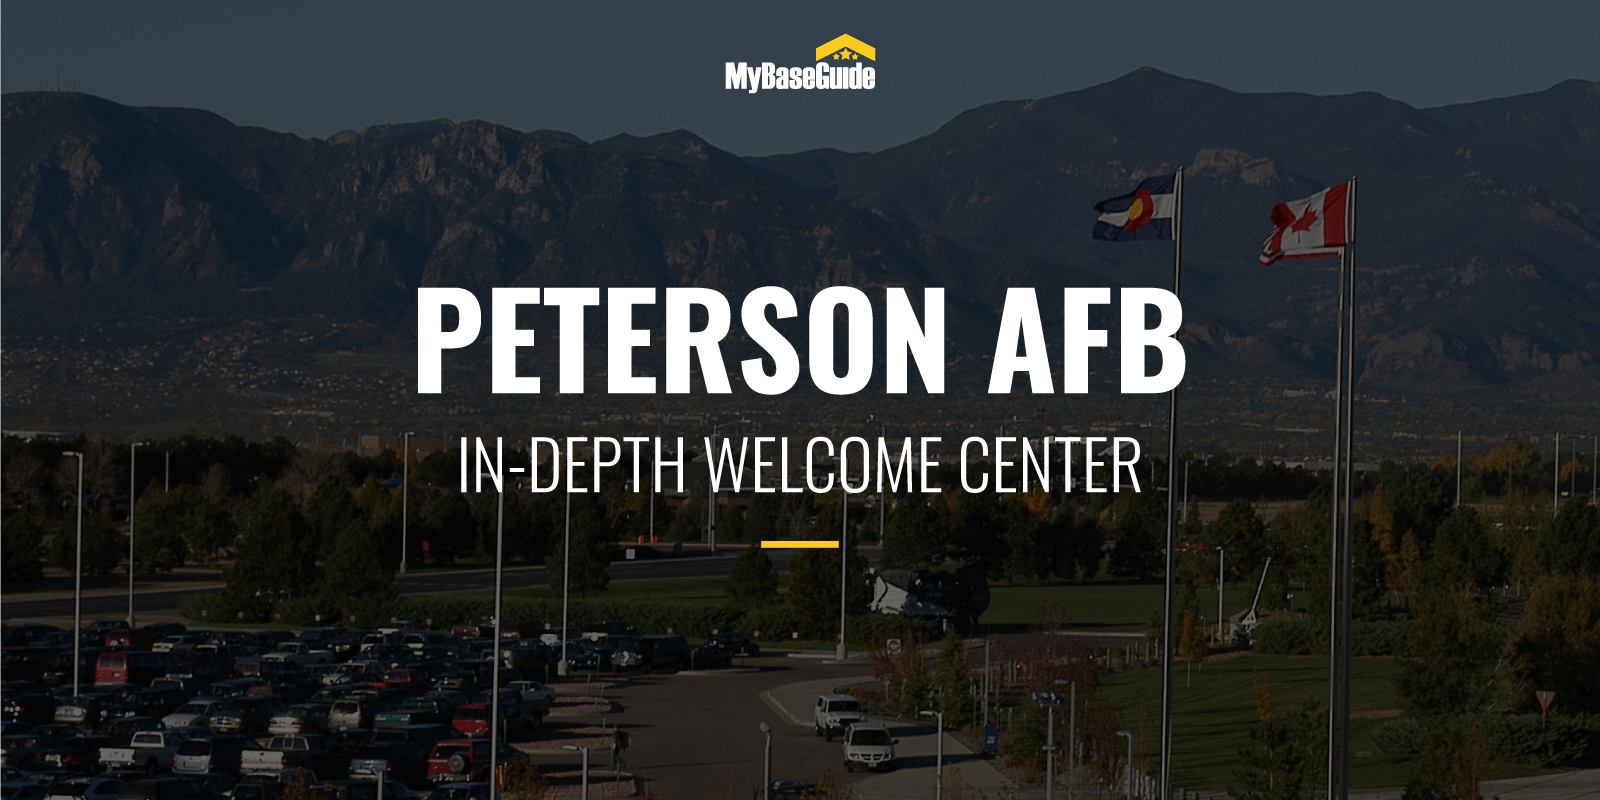 Peterson AFB: In-Depth Welcome Center